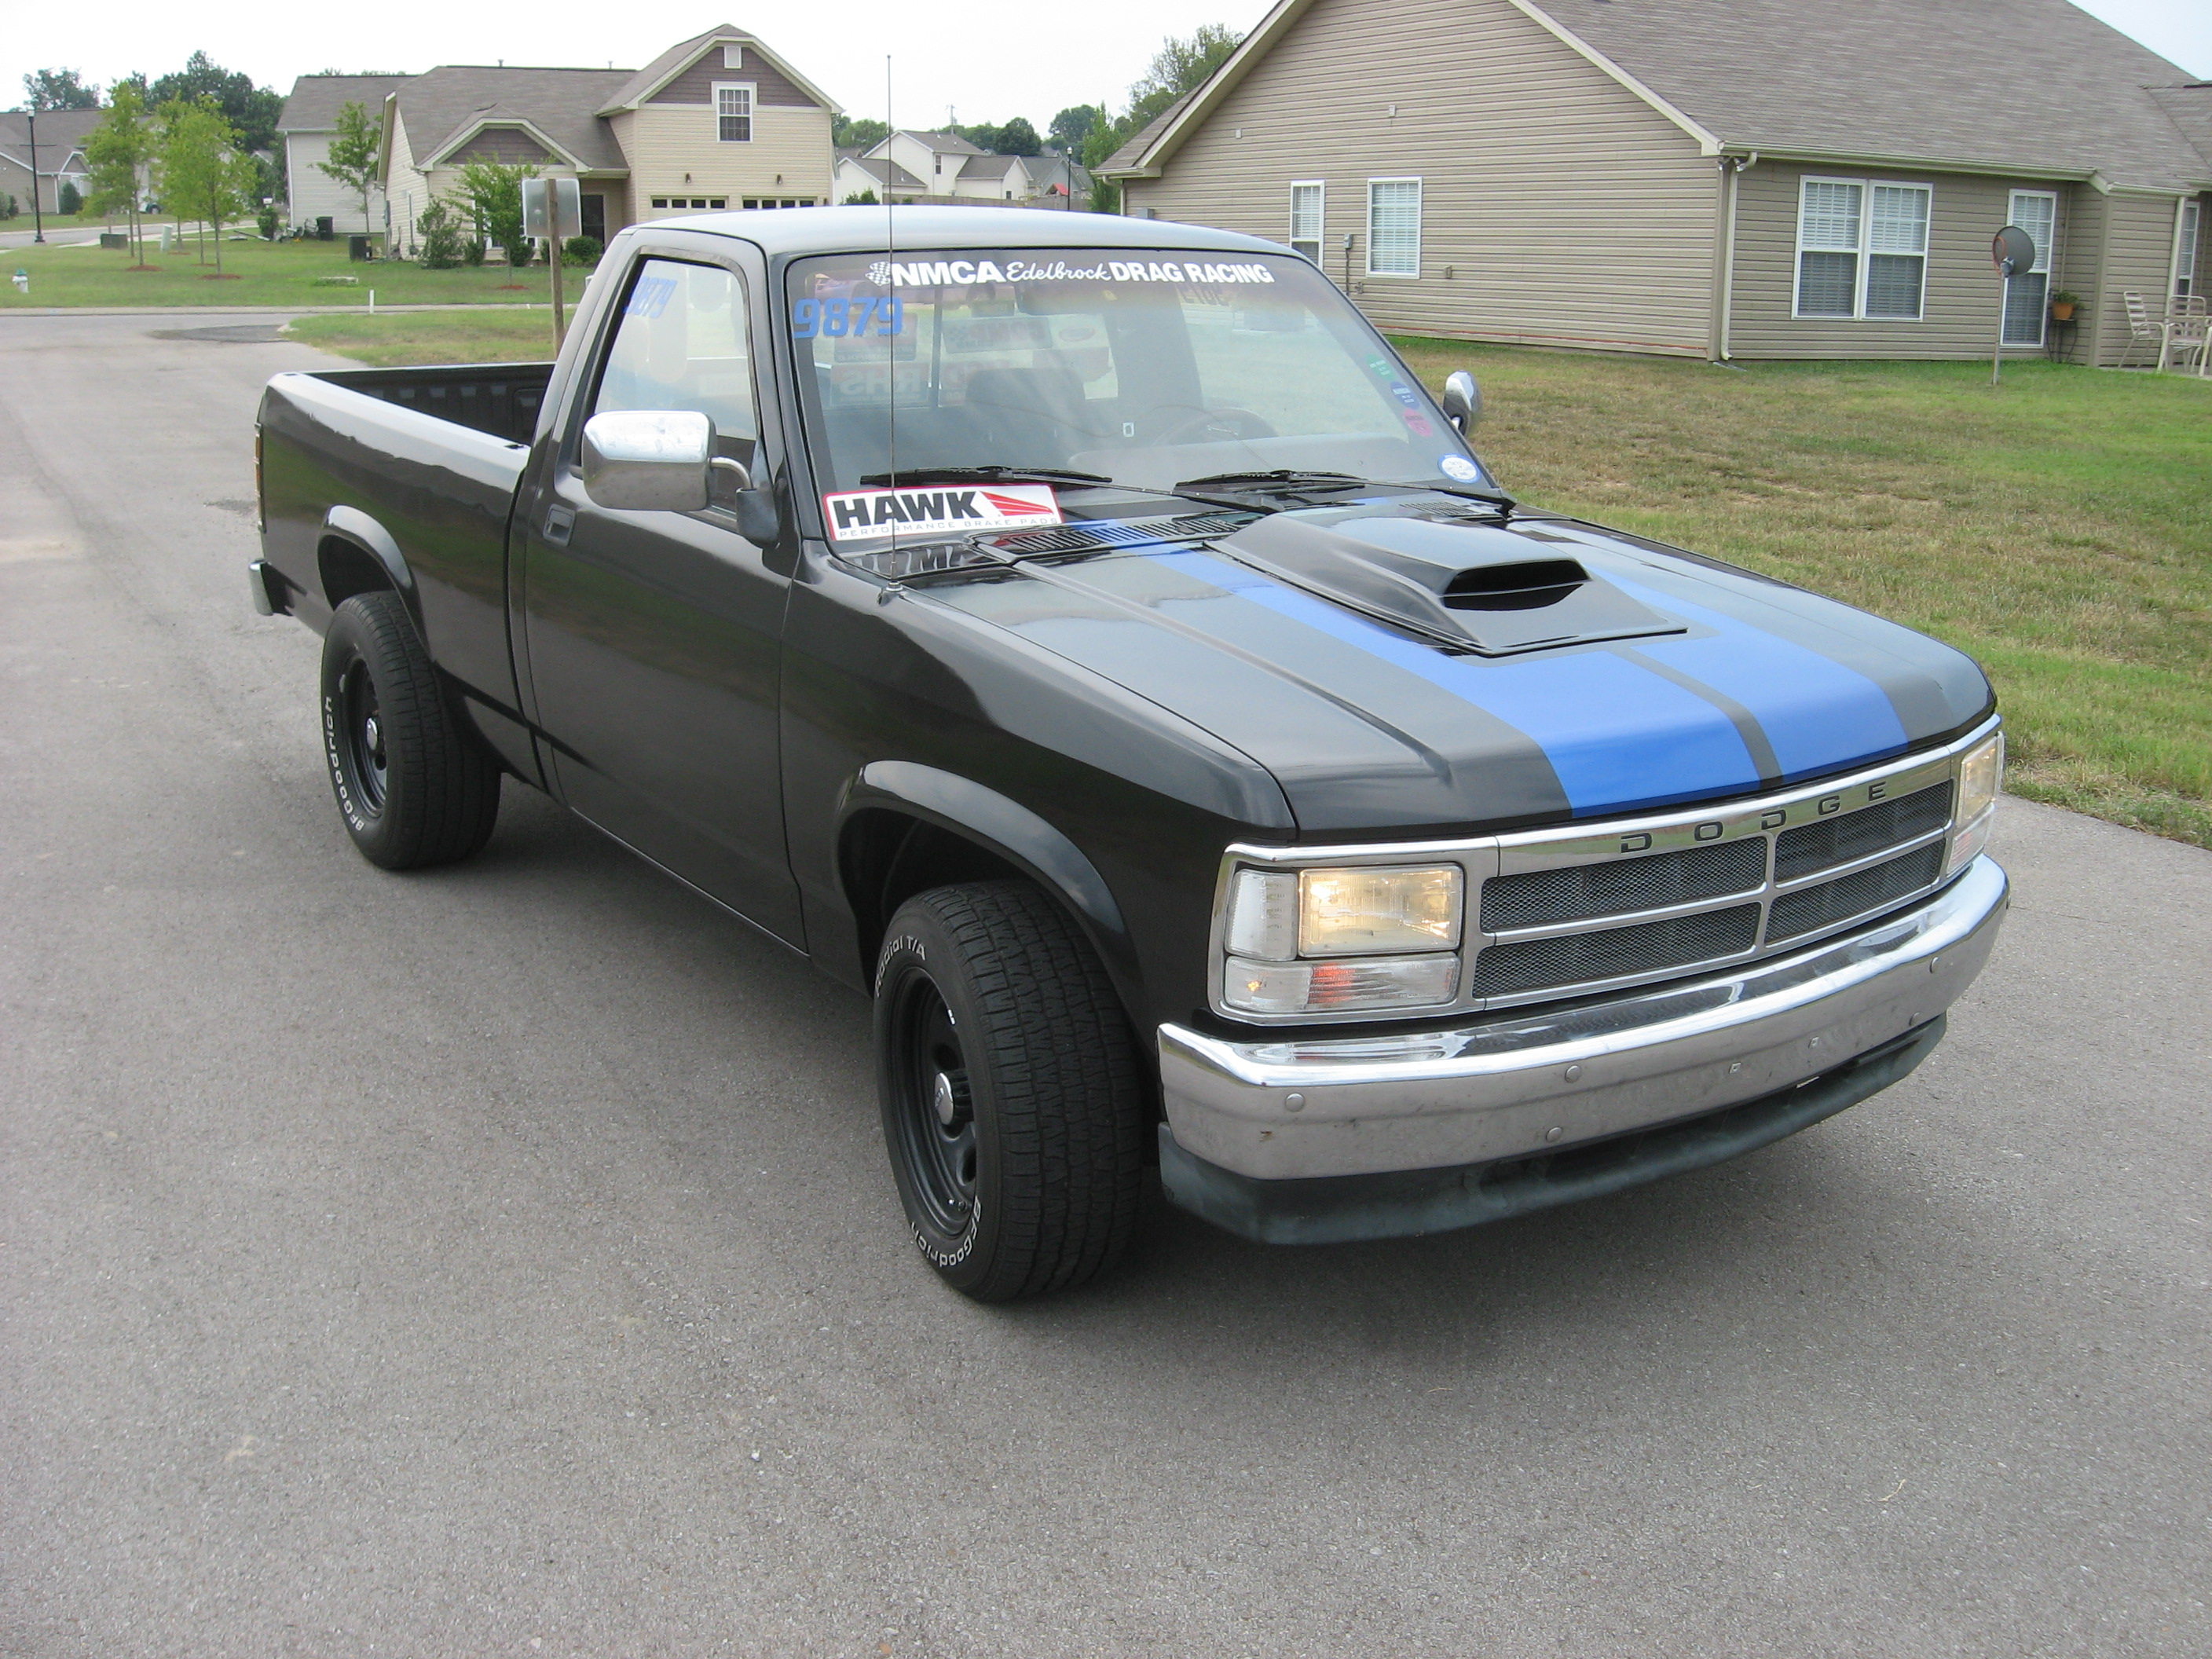 Brilliant Black Pearl (PXR) 1993 Dodge Dakota LE